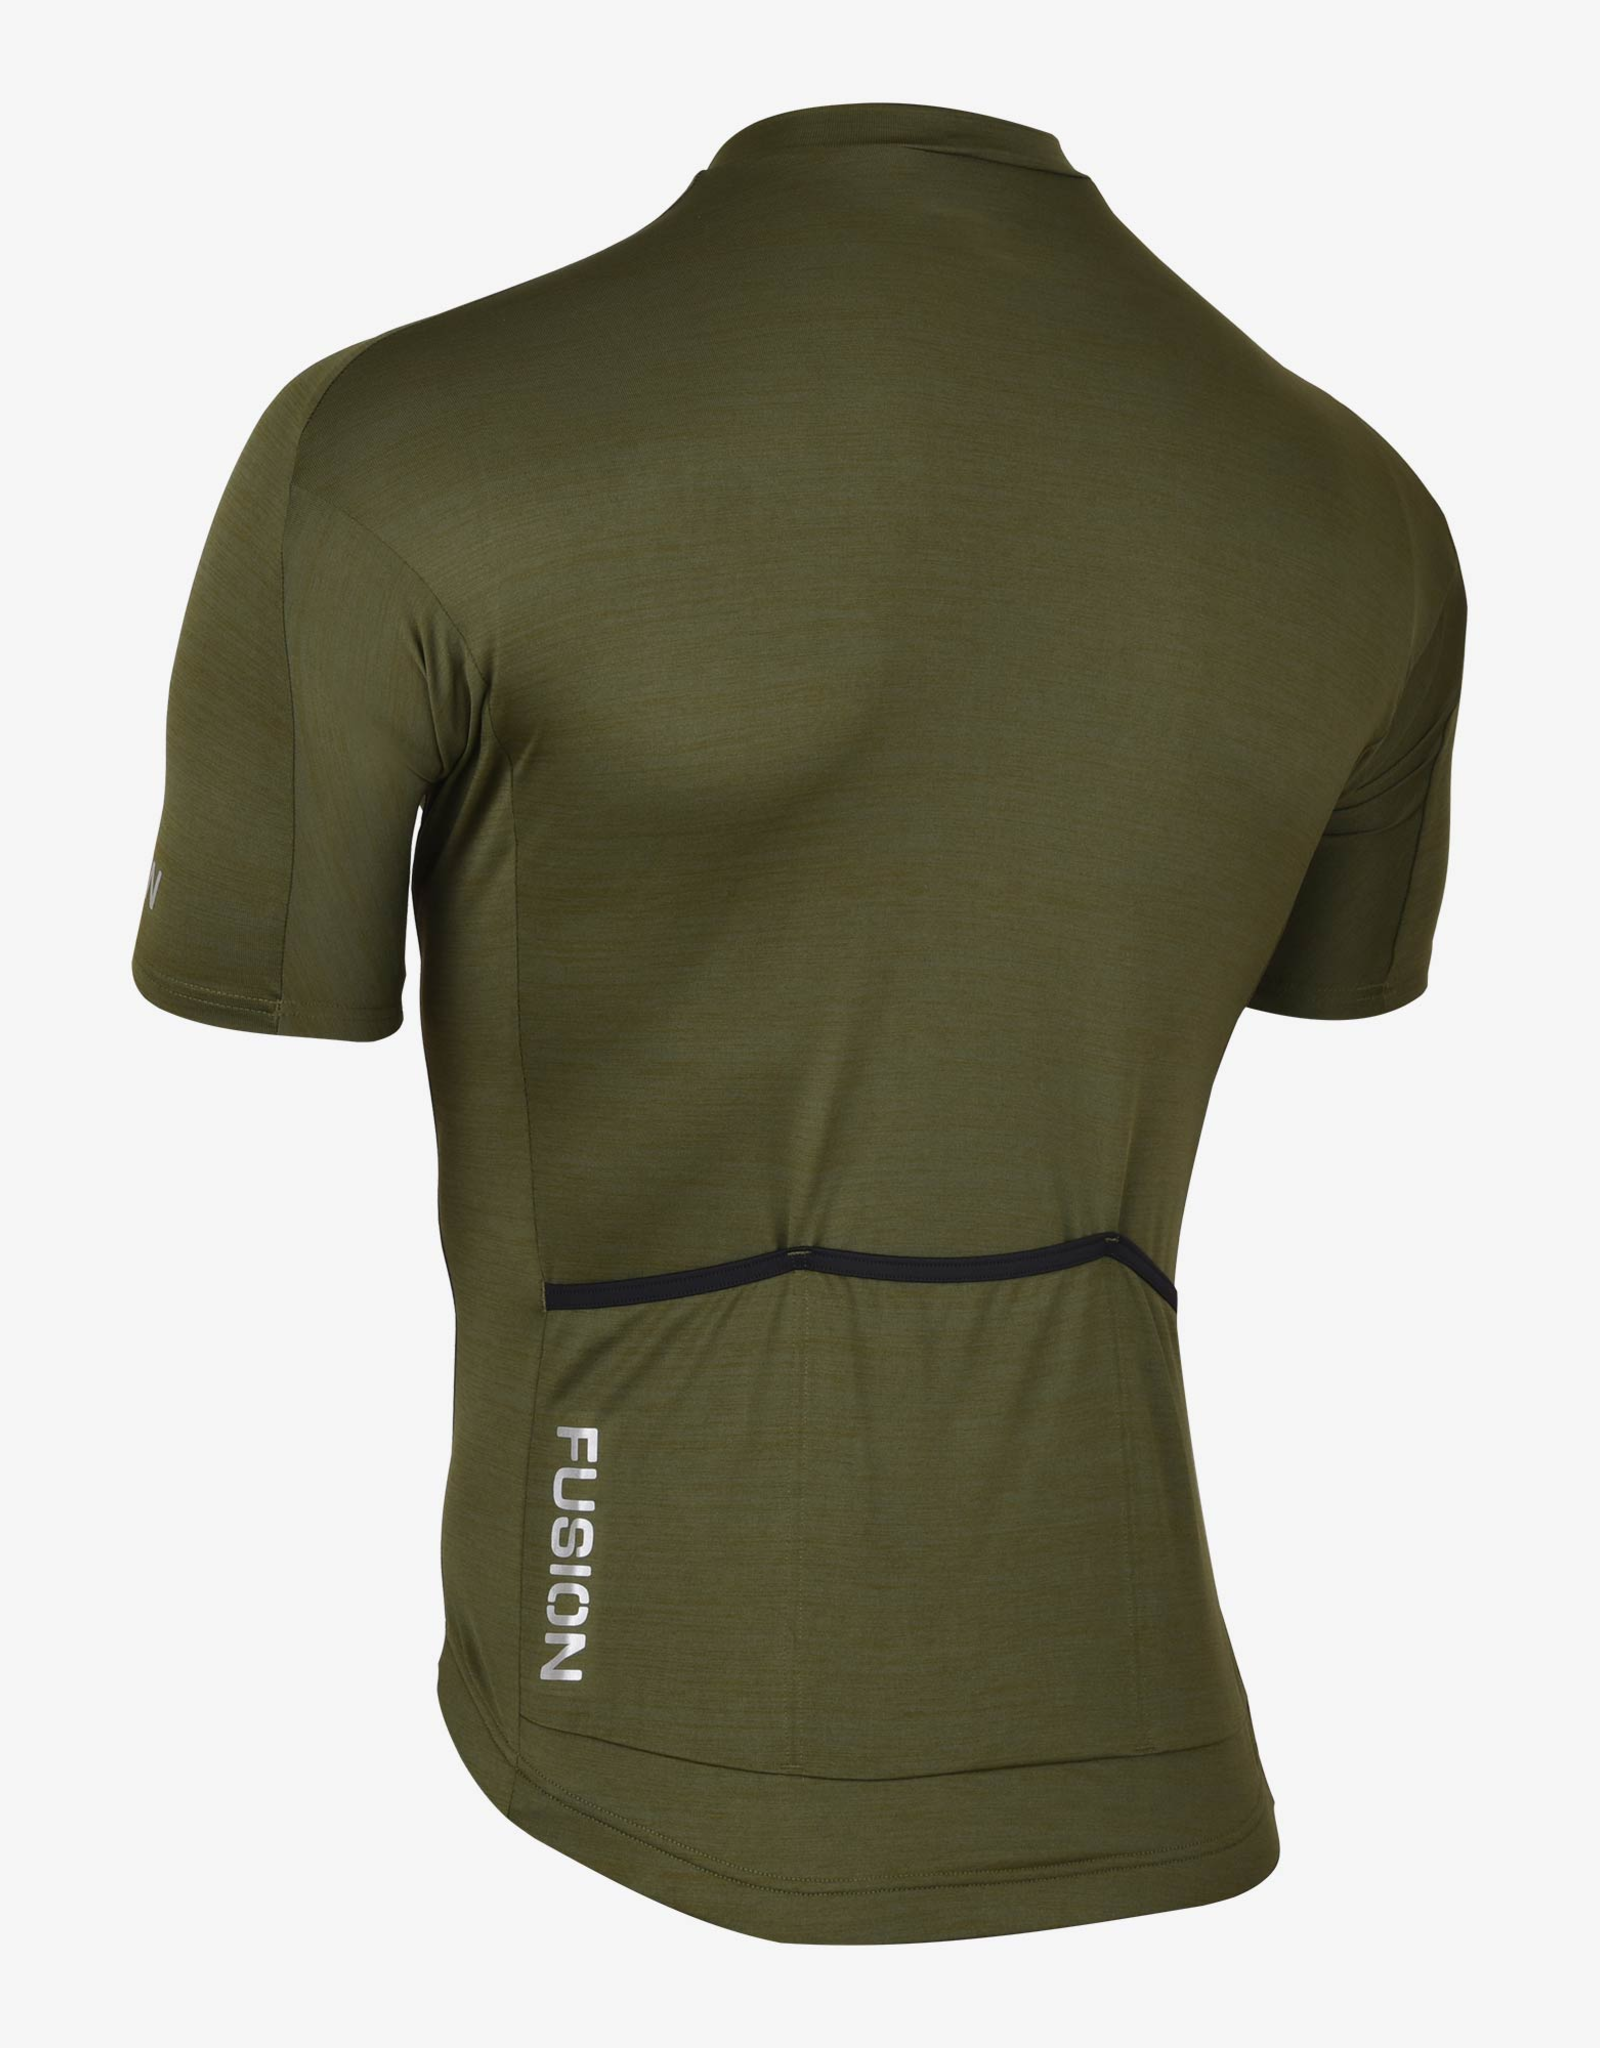 fusion C3 cycling jersey